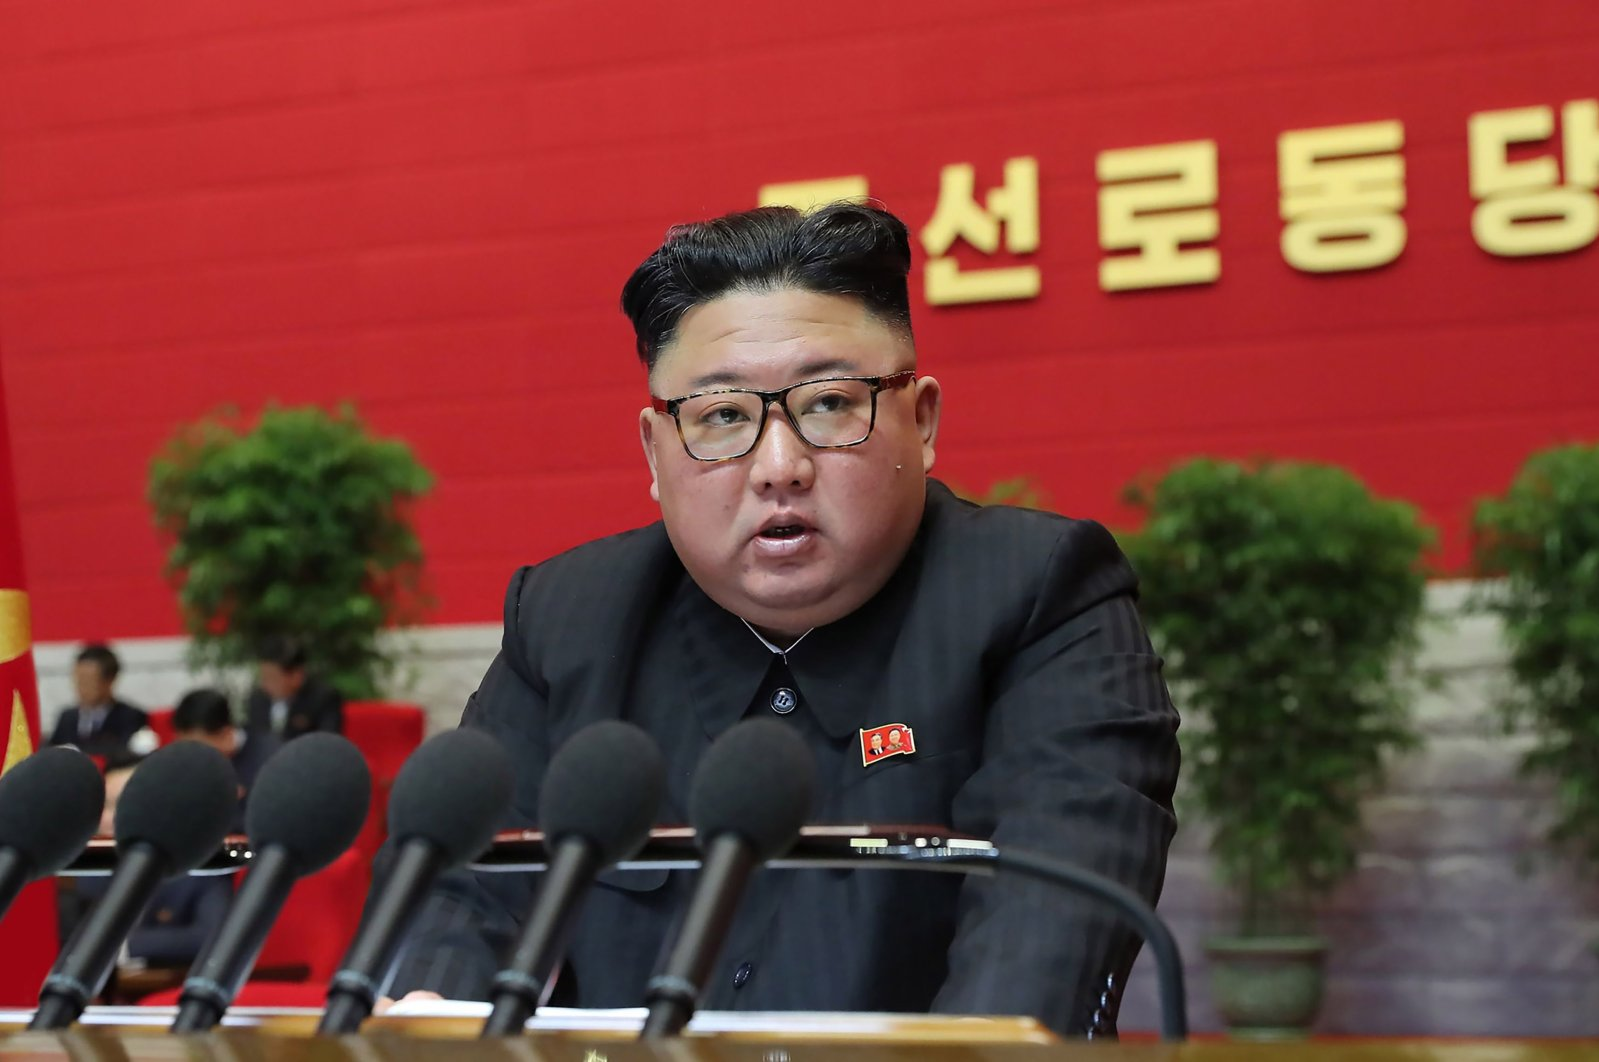 North Korean leader Kim Jong Un speaks during the third day of the 8th Congress of the Workers' Party of Korea (WPK) in Pyongyang, North Korea, taken on Jan. 7, 2021, and released from North Korea's official Korean Central News Agency (KCNA) on Jan. 8, 2021. (KCNA via KNS / AFP Photo)